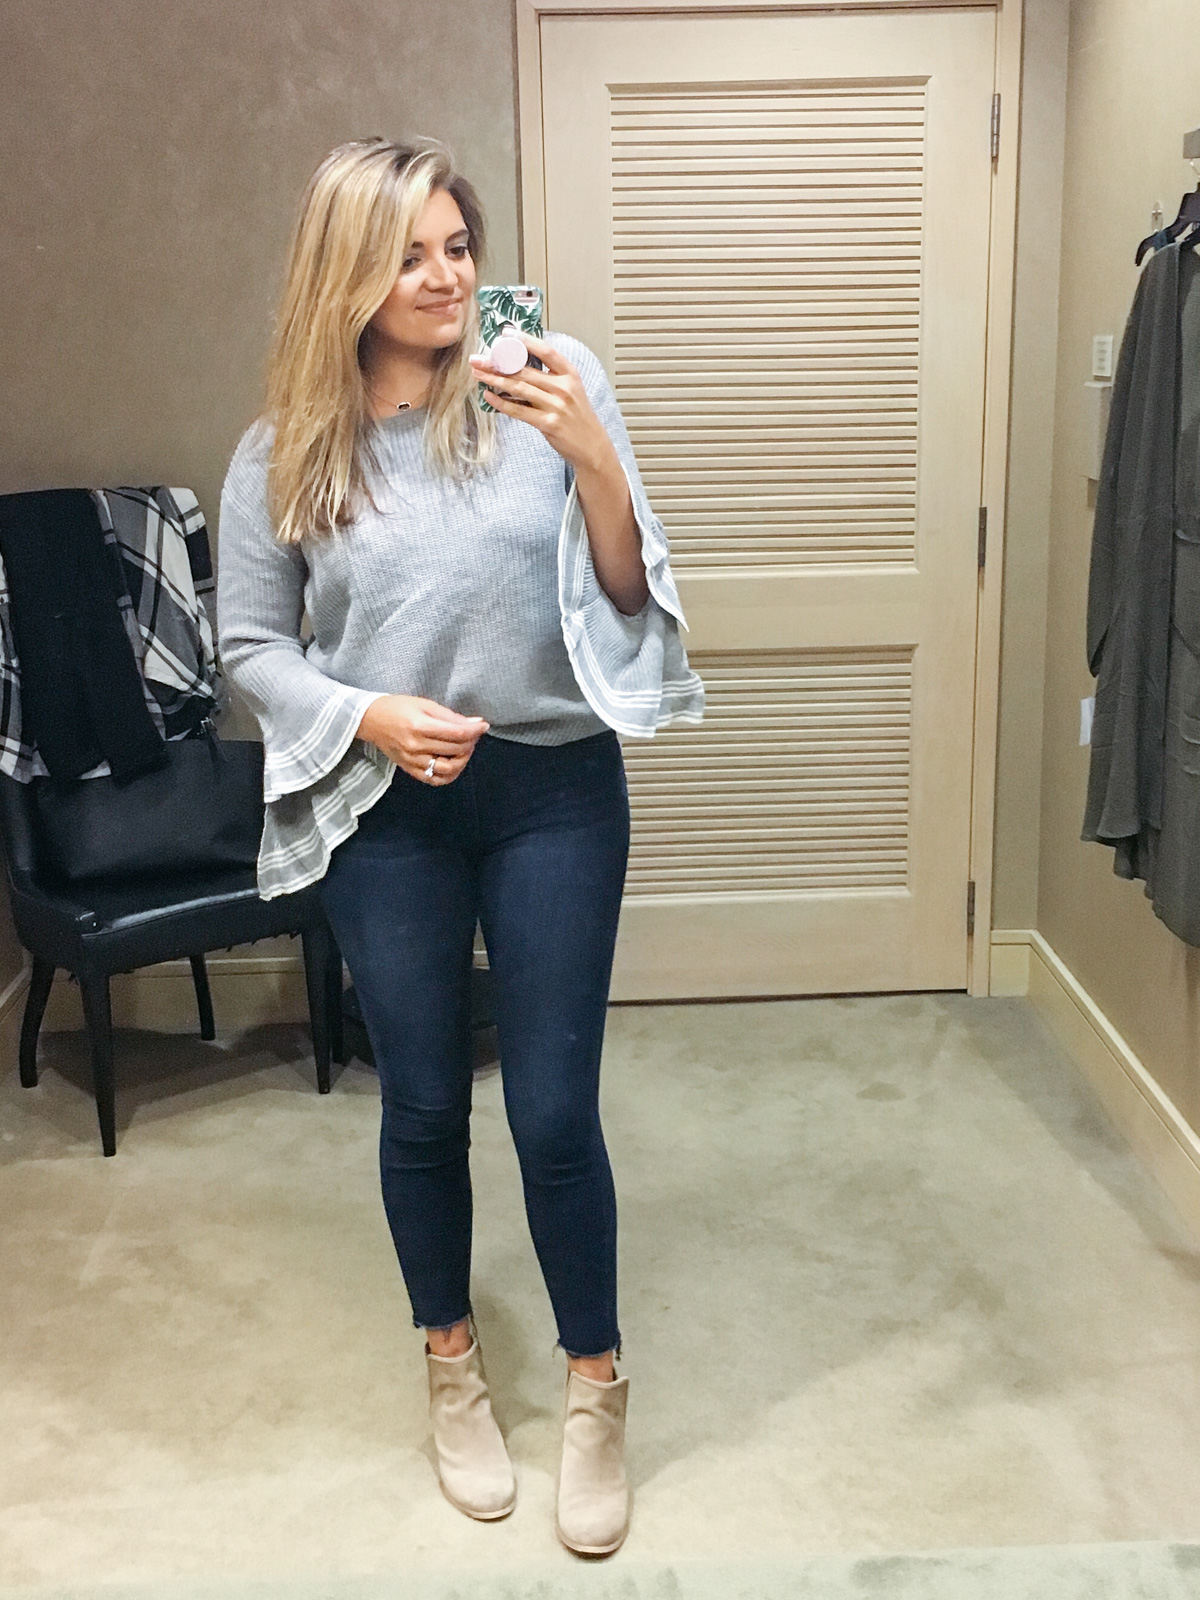 best sweaters Nordstrom 2017 - dressing room reviews from Nordstrom | See the full dressing room review post at bylaurenm.com!